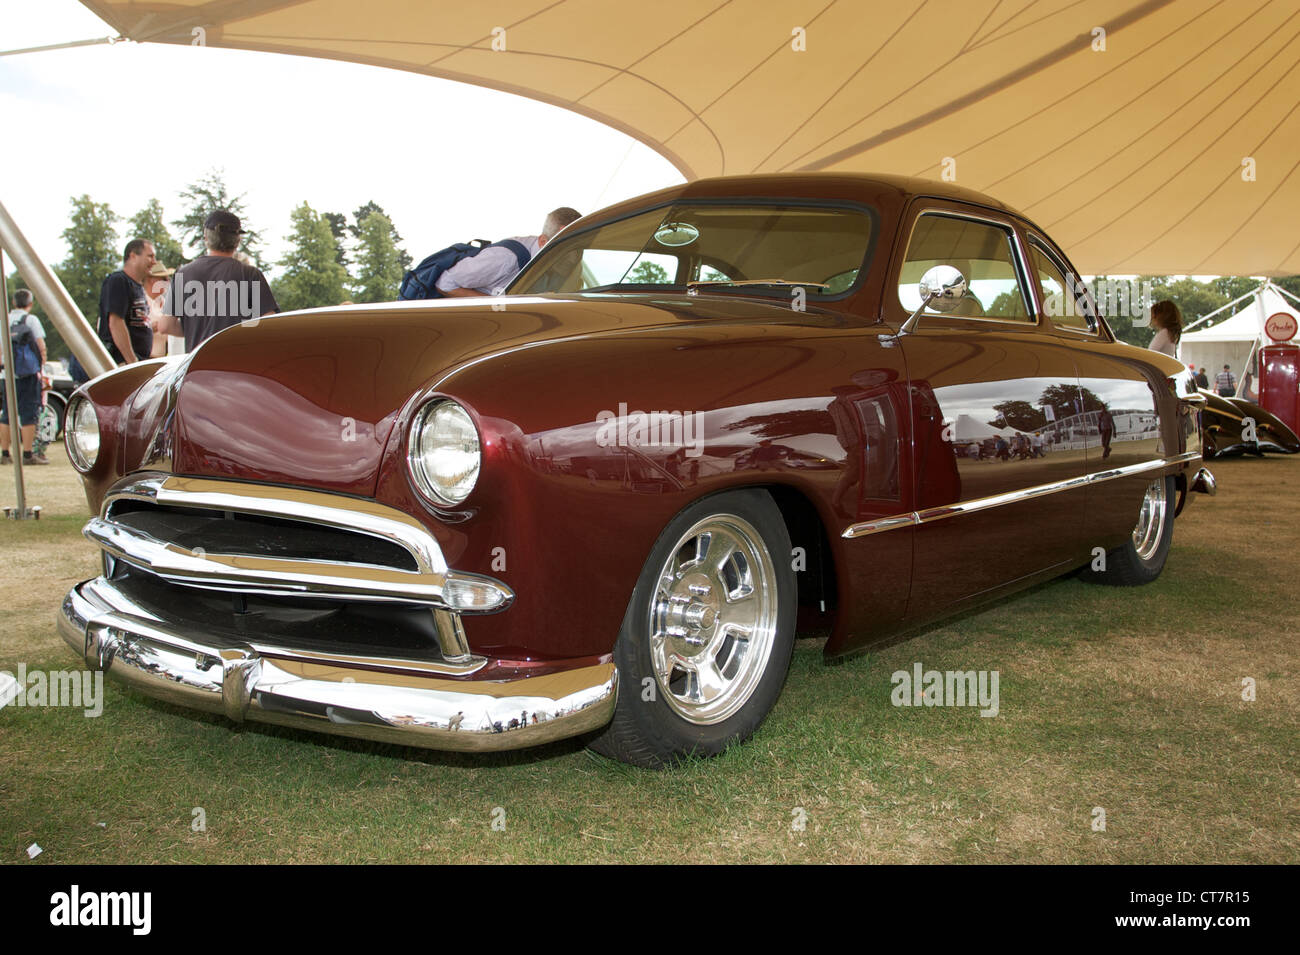 1949 Ford Stock Photos Images Alamy 2 Door Sedan Shoebox Owned By Eric Clapton At Goodwood Festival Of Speed 2010